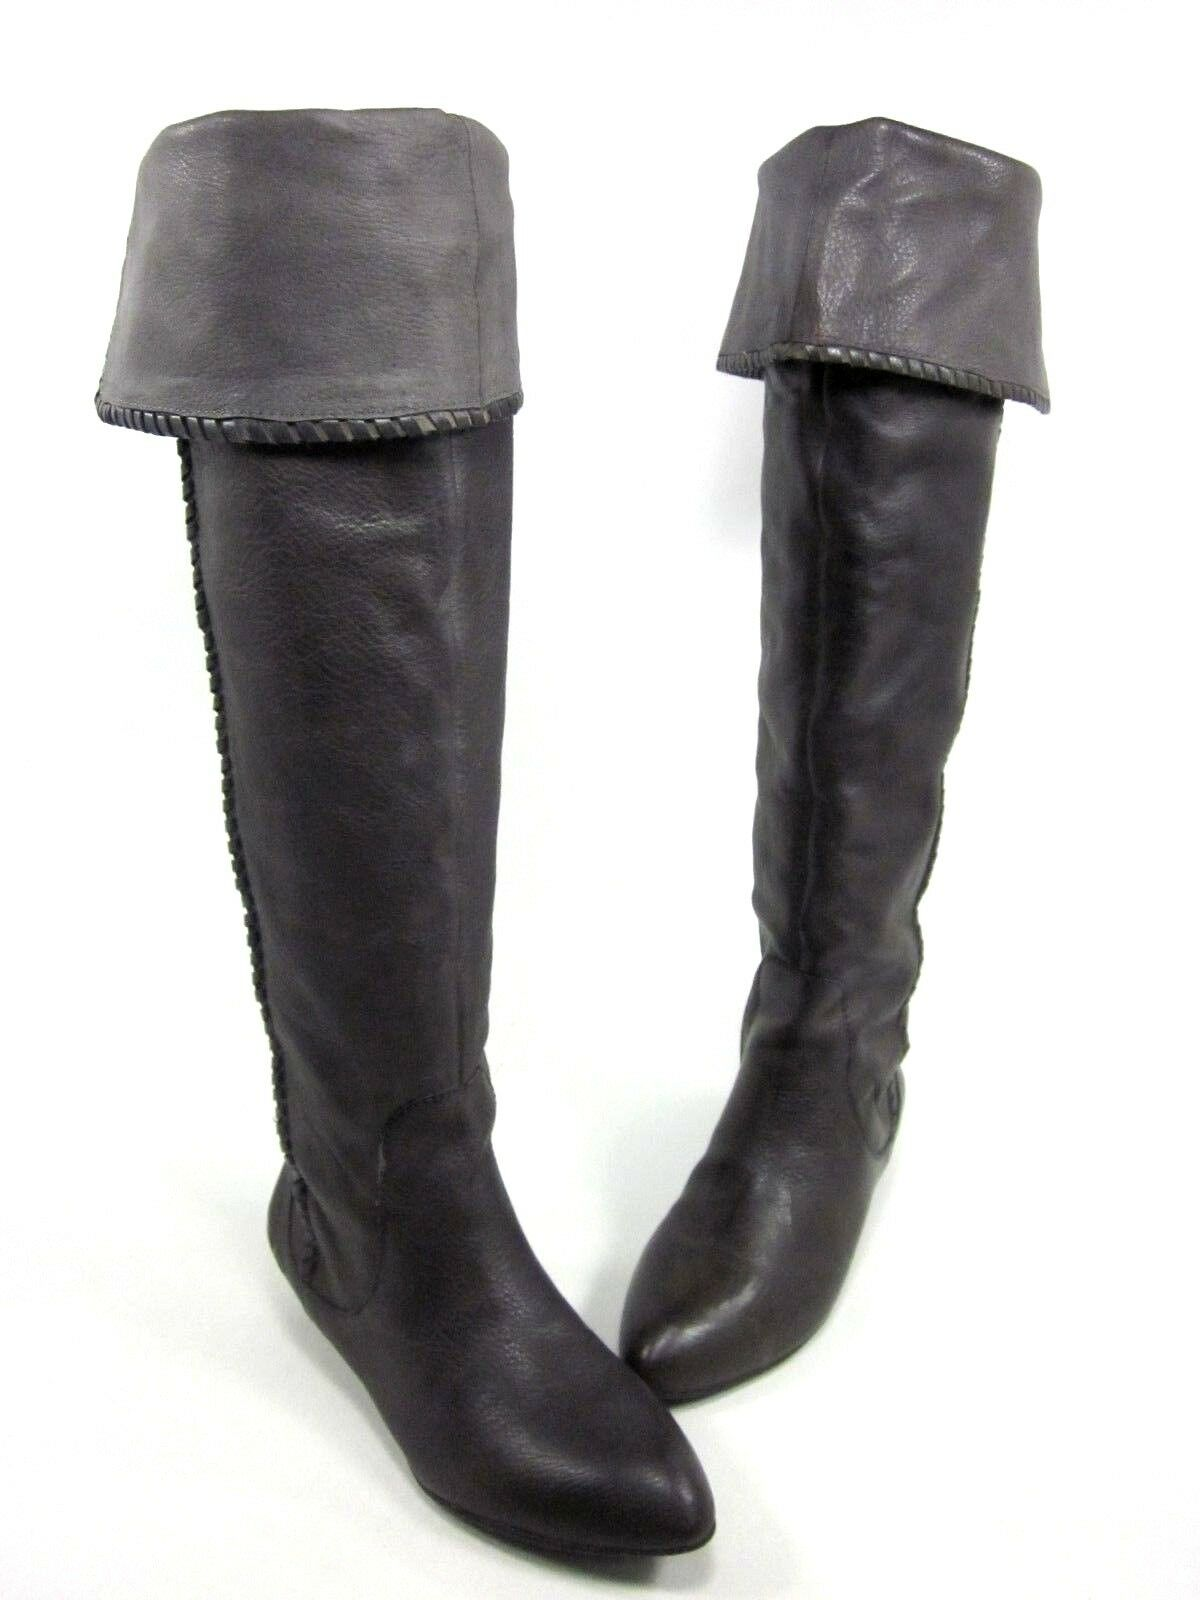 LUCKY damen GAI Stiefel, ROCK, US Größe 5.5 EUR Größe 35.5, MEDIUM, NEW W O BOX